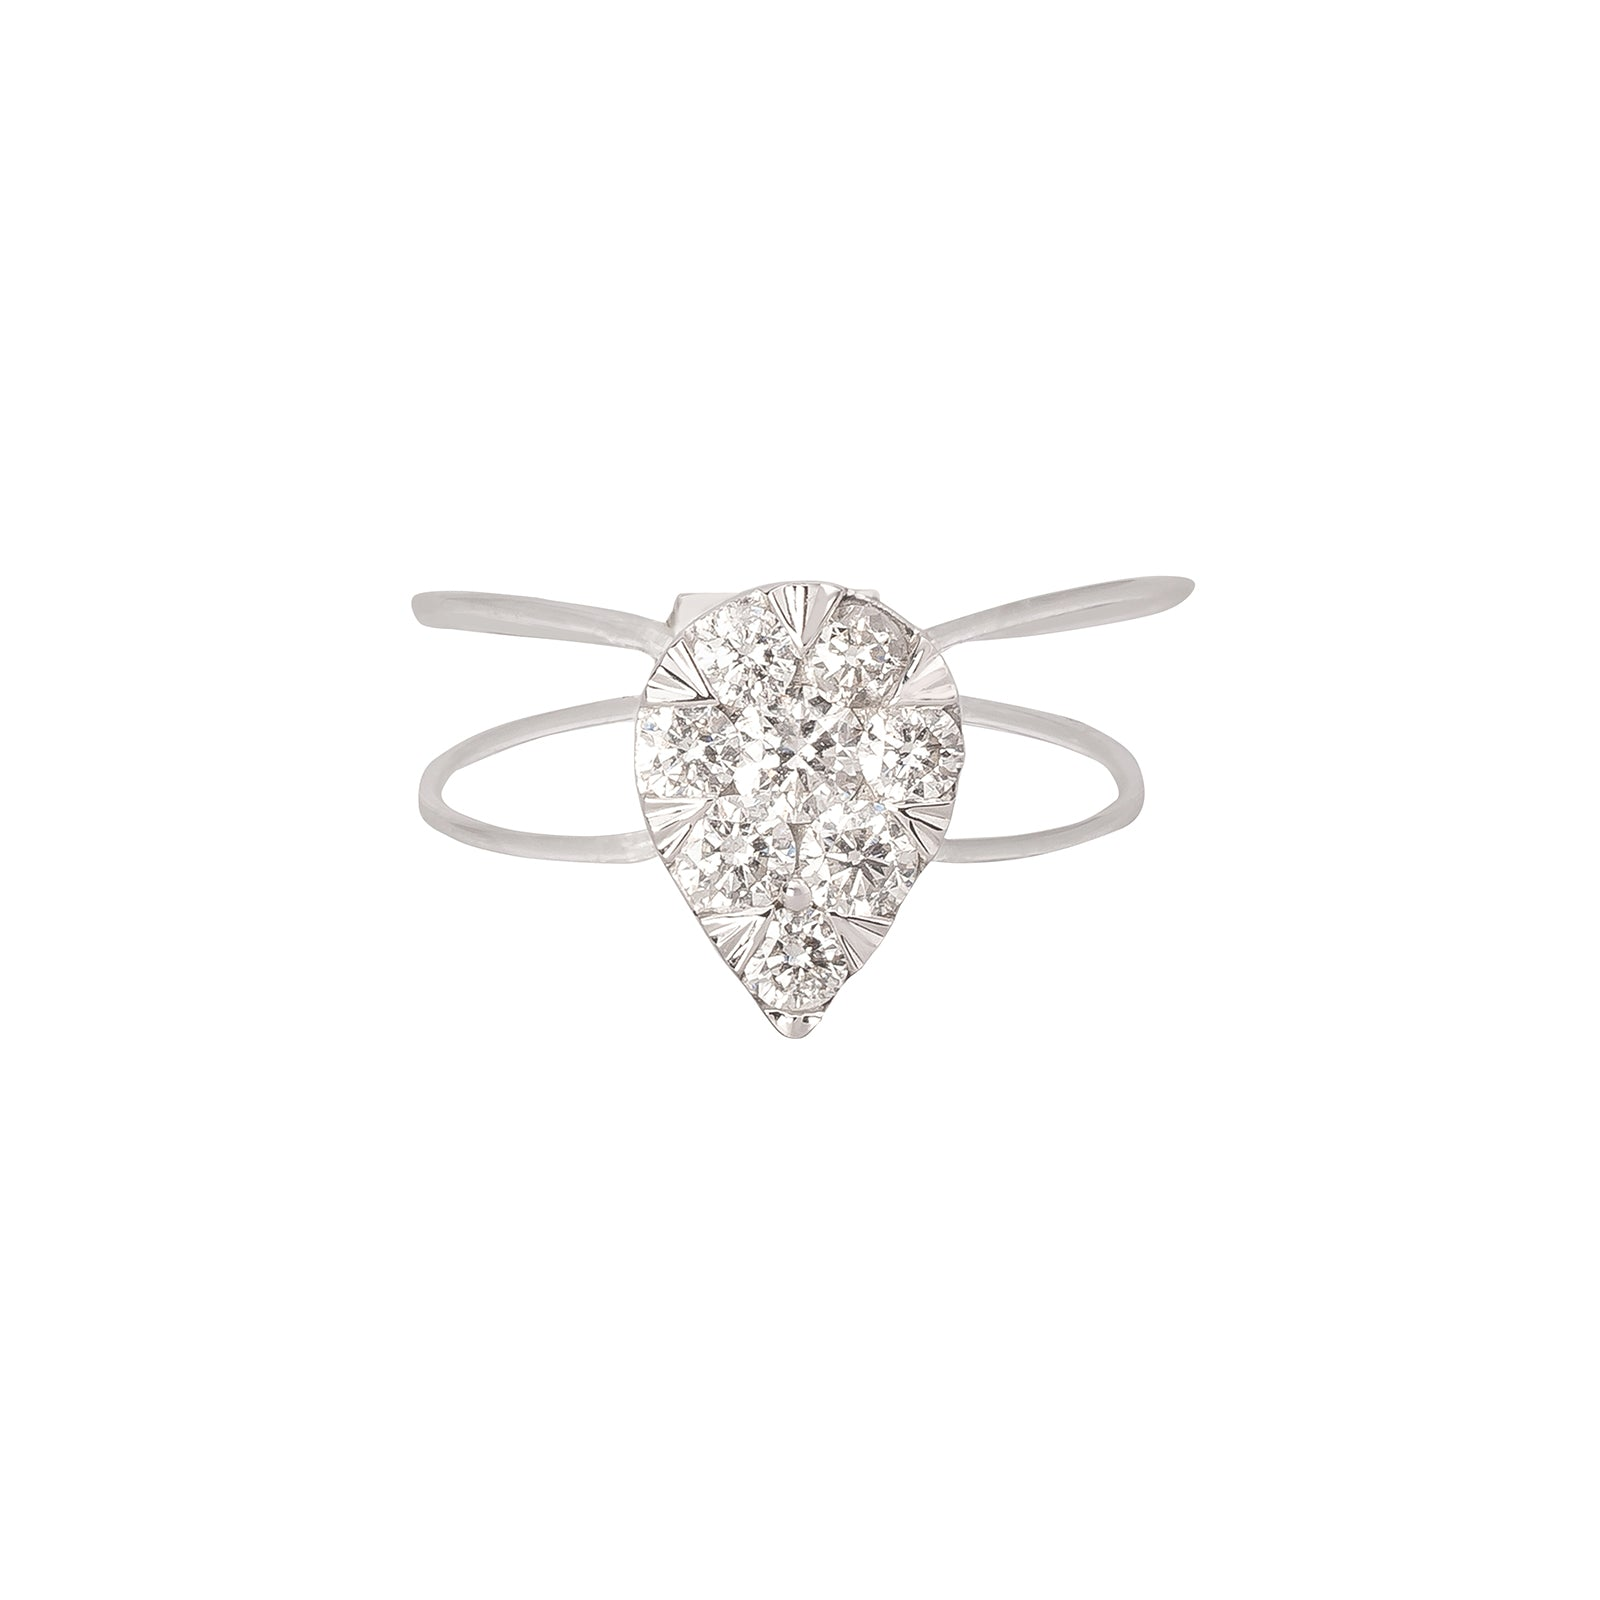 Persée Paris Floating Pear Diamond Nylon Ring - White Gold - Rings - Broken English Jewelry